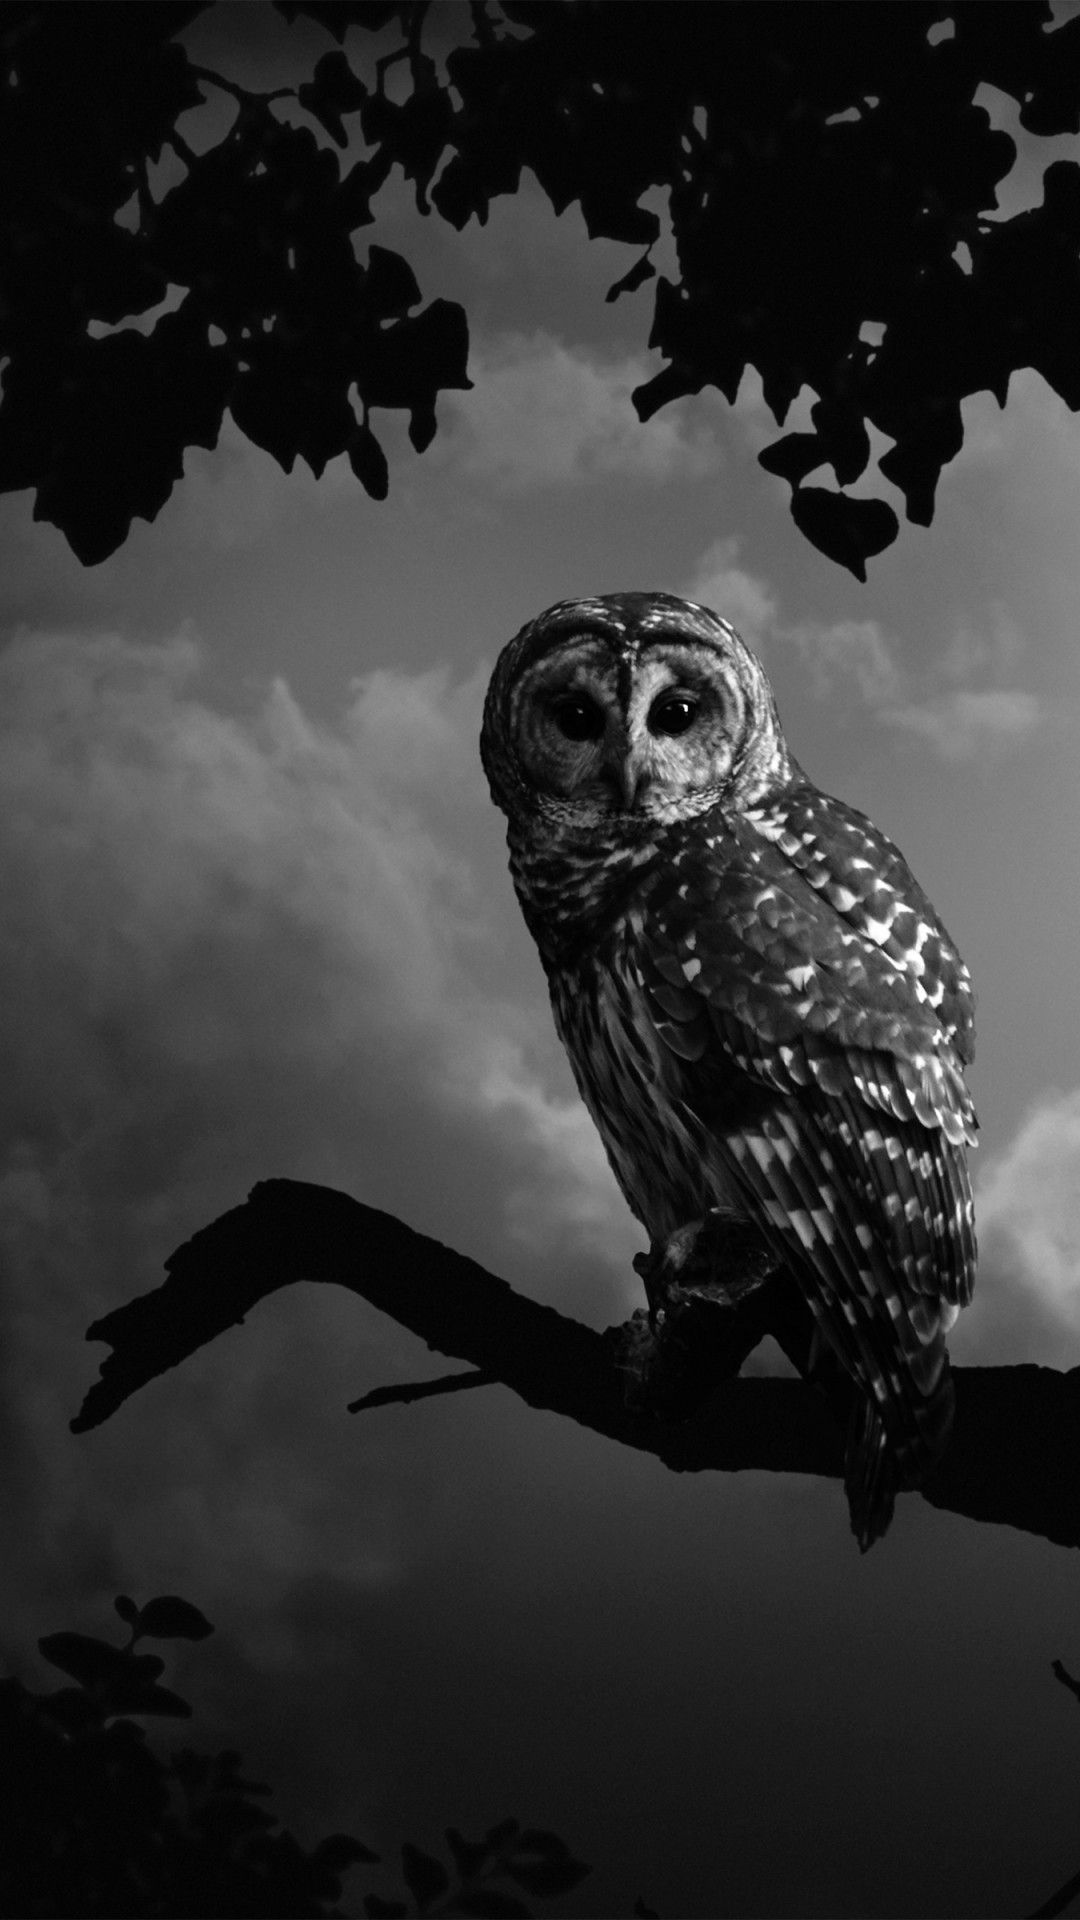 Manly Iphone Wallpaper Black And White Owl Wallpapers Top Free Black And White